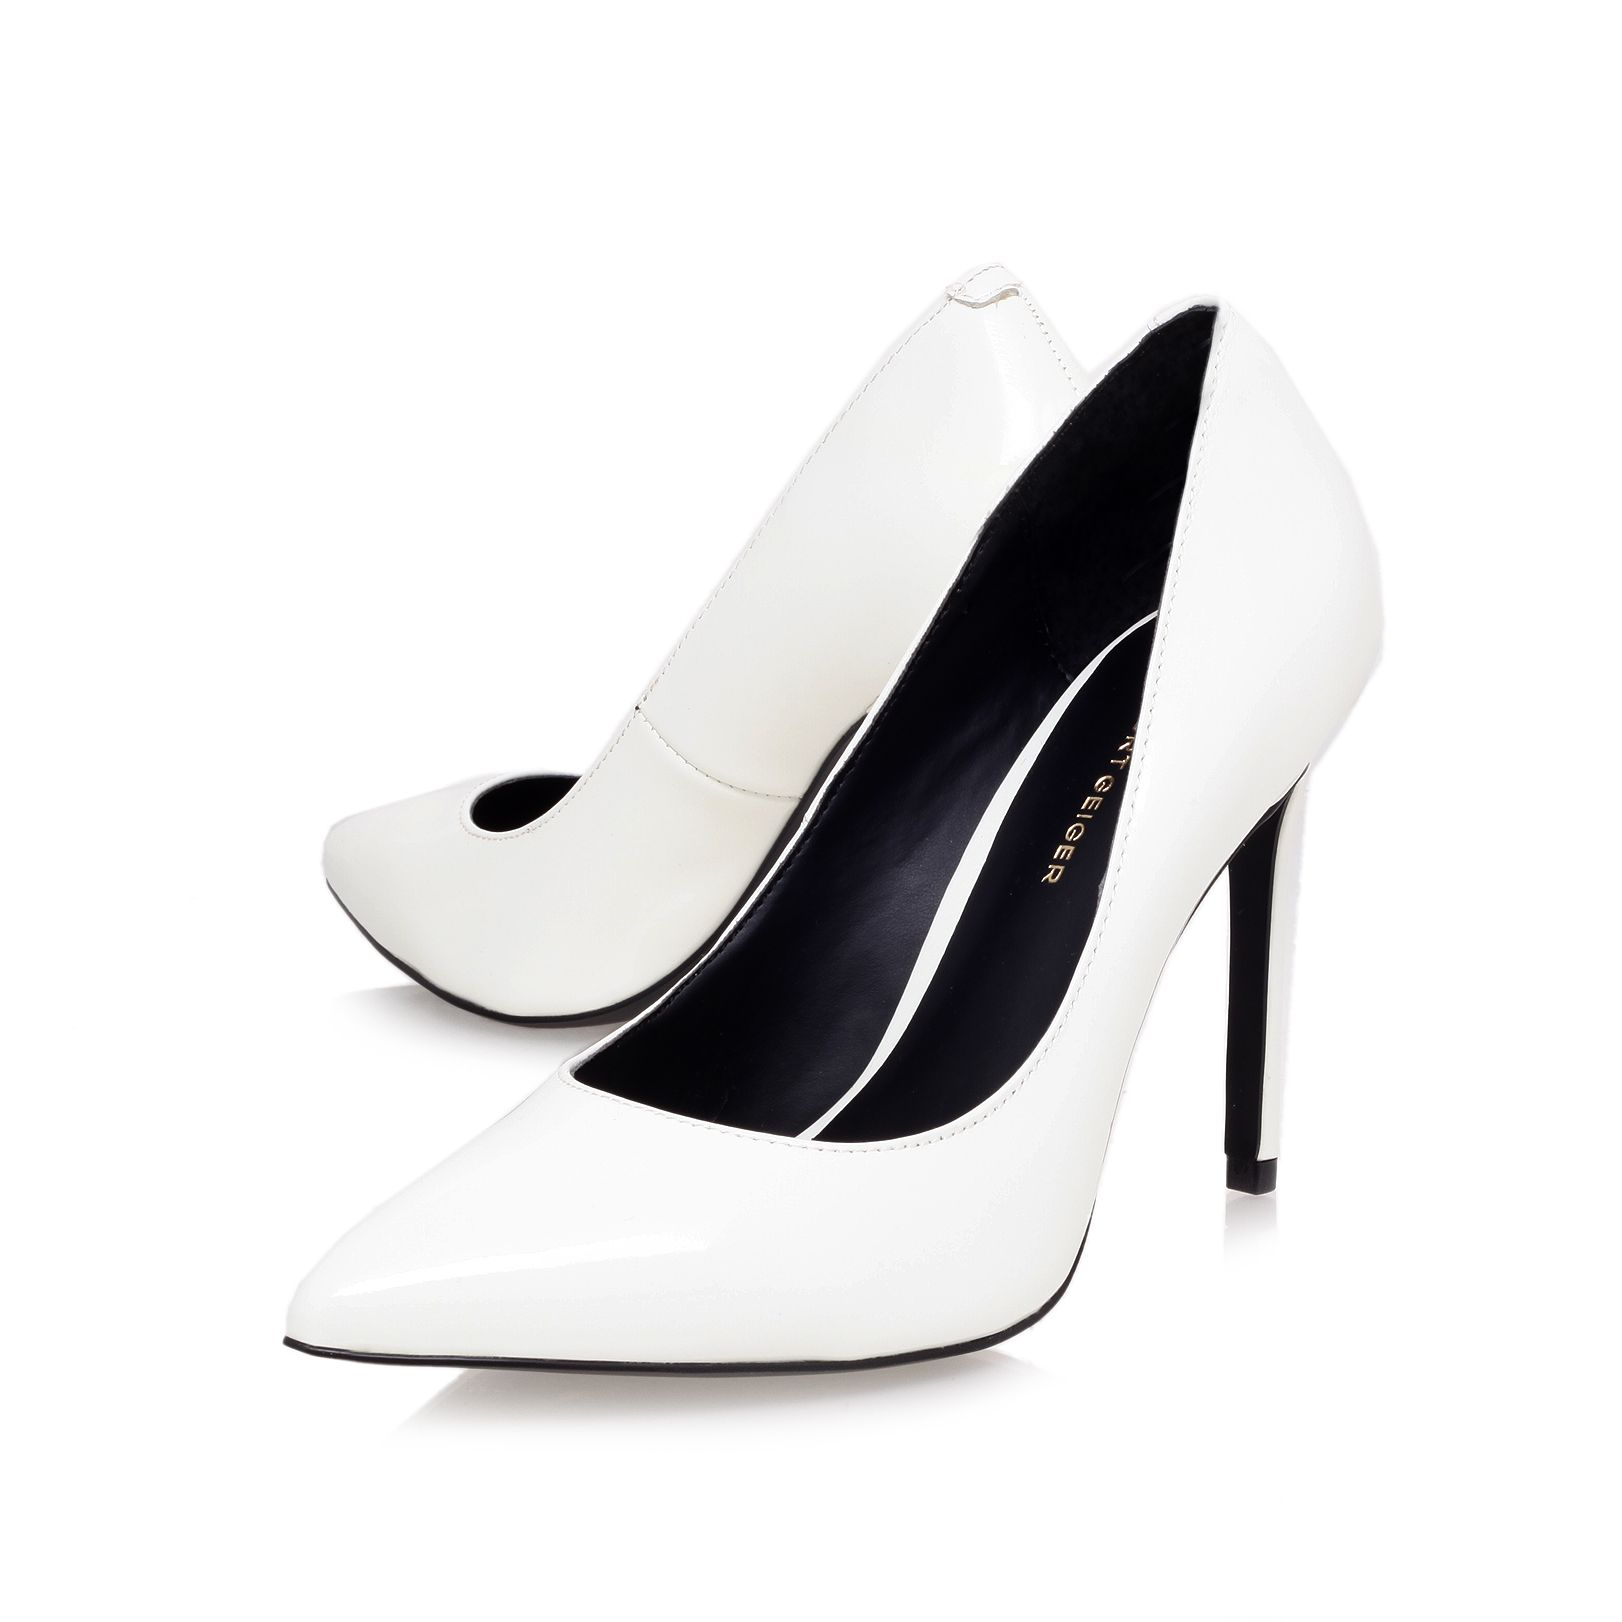 Bailey high heel court shoes